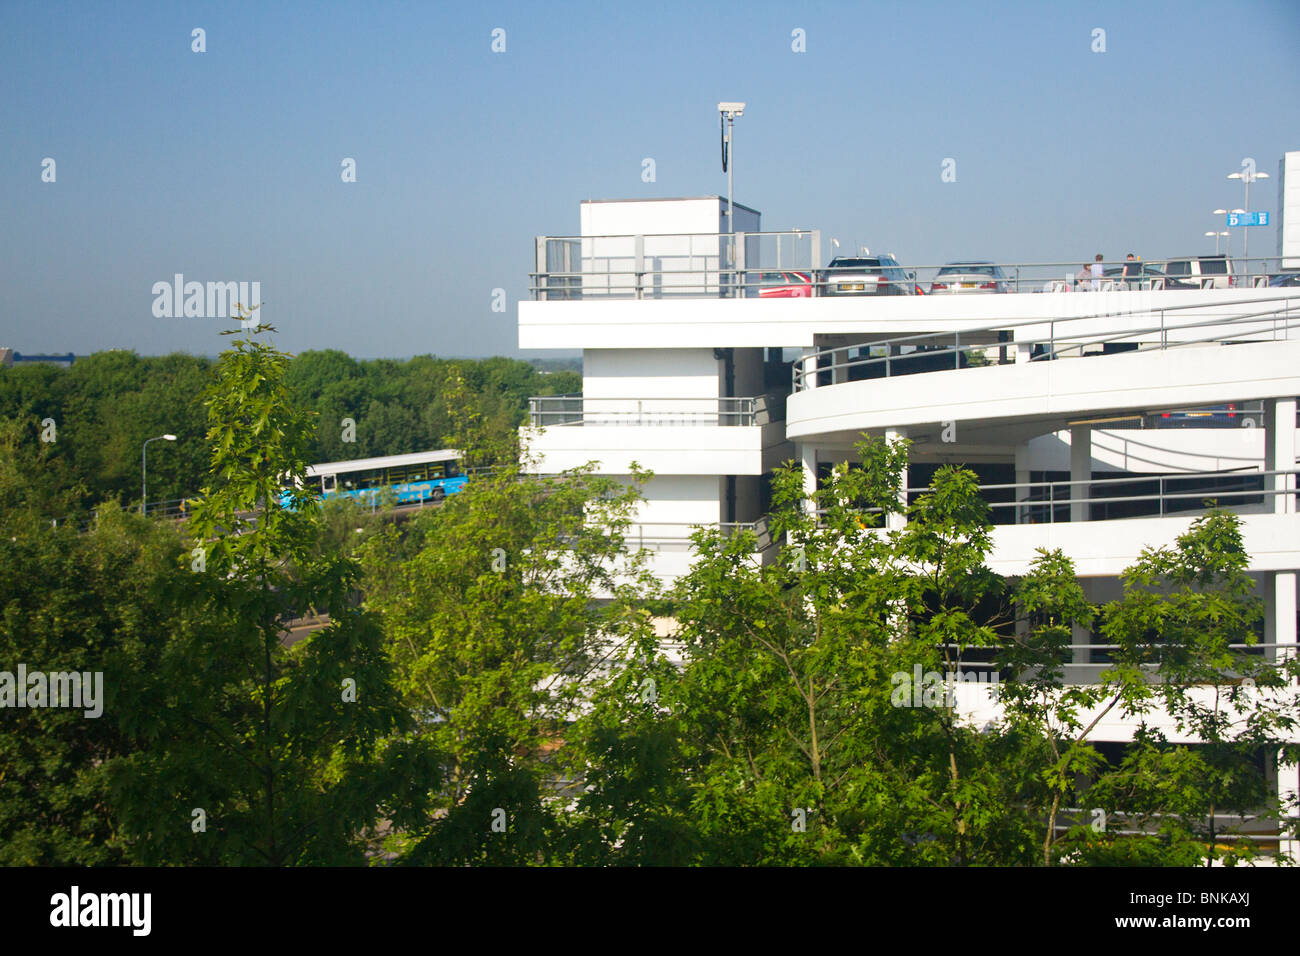 Multistorey car park at Gatwick Airport, West Sussex, UK - Stock Image